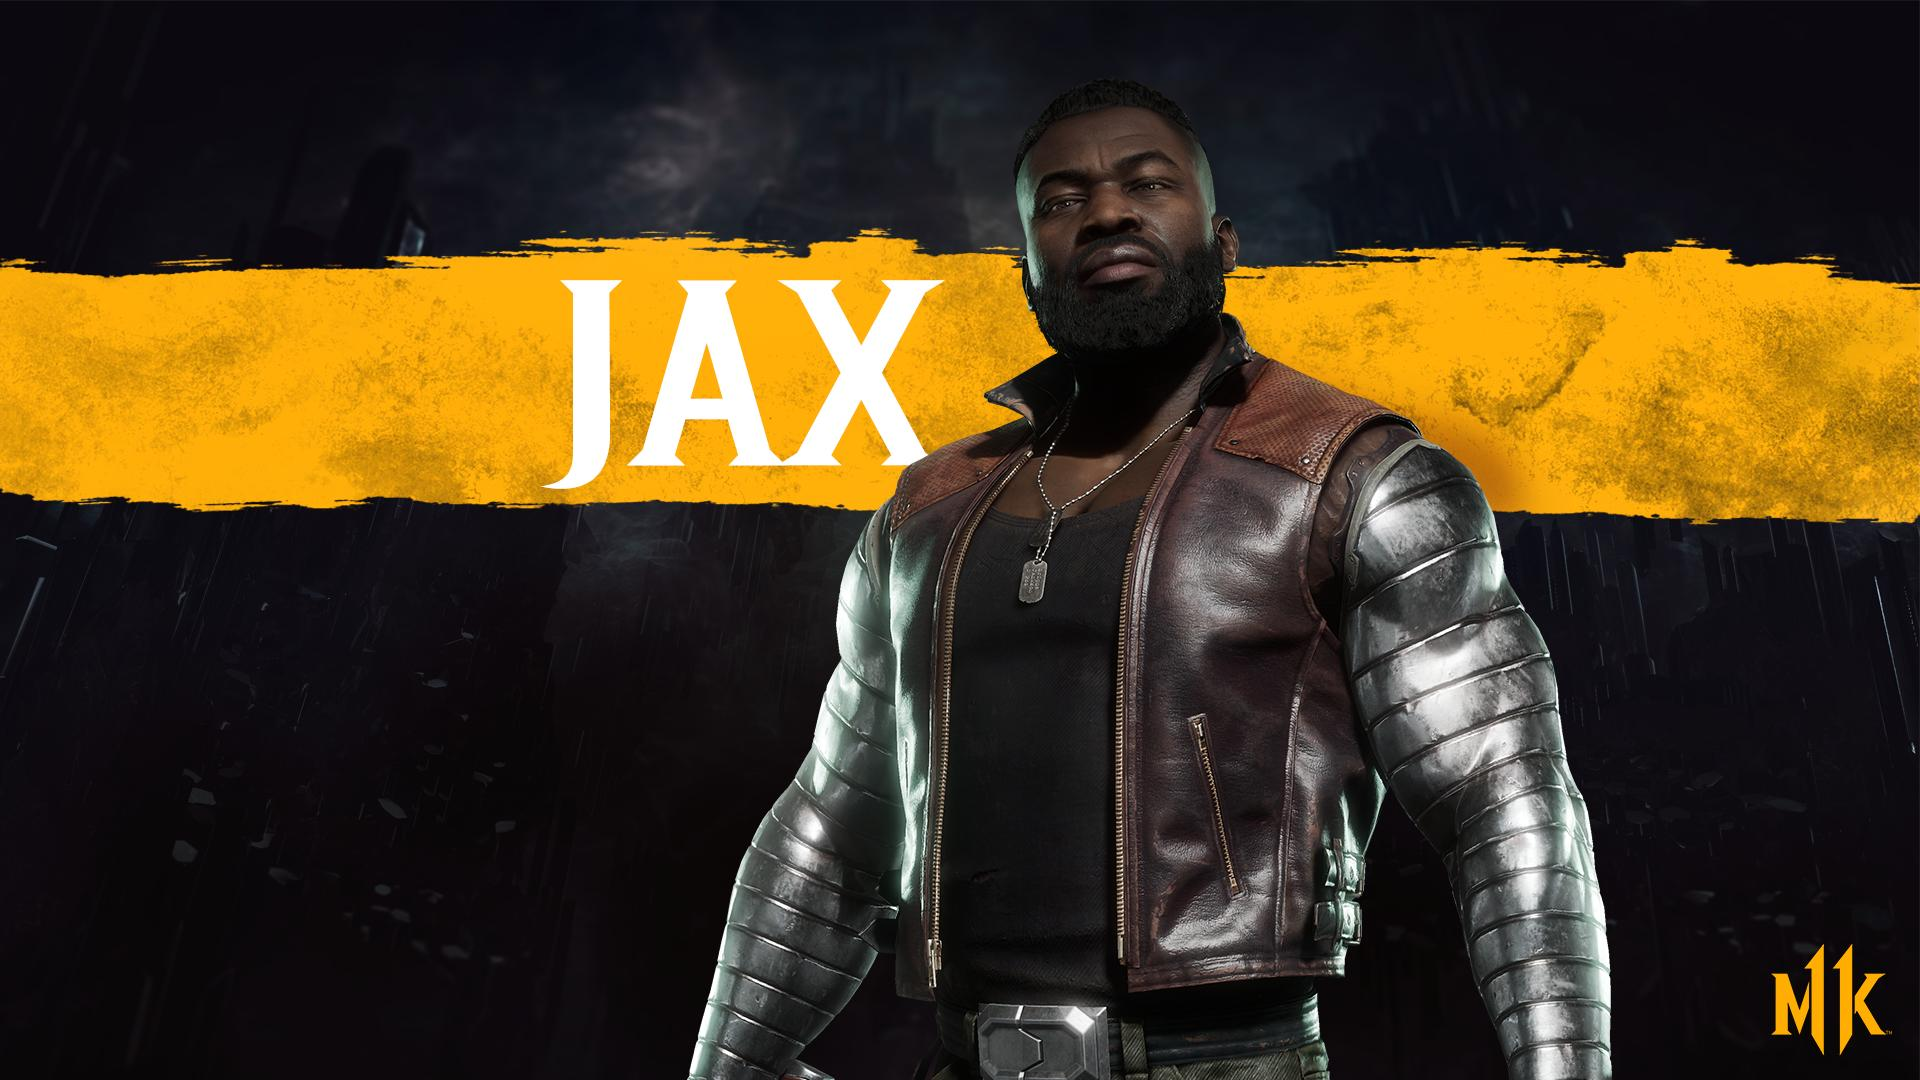 Mortal Kombat 11 background - Jax Briggs